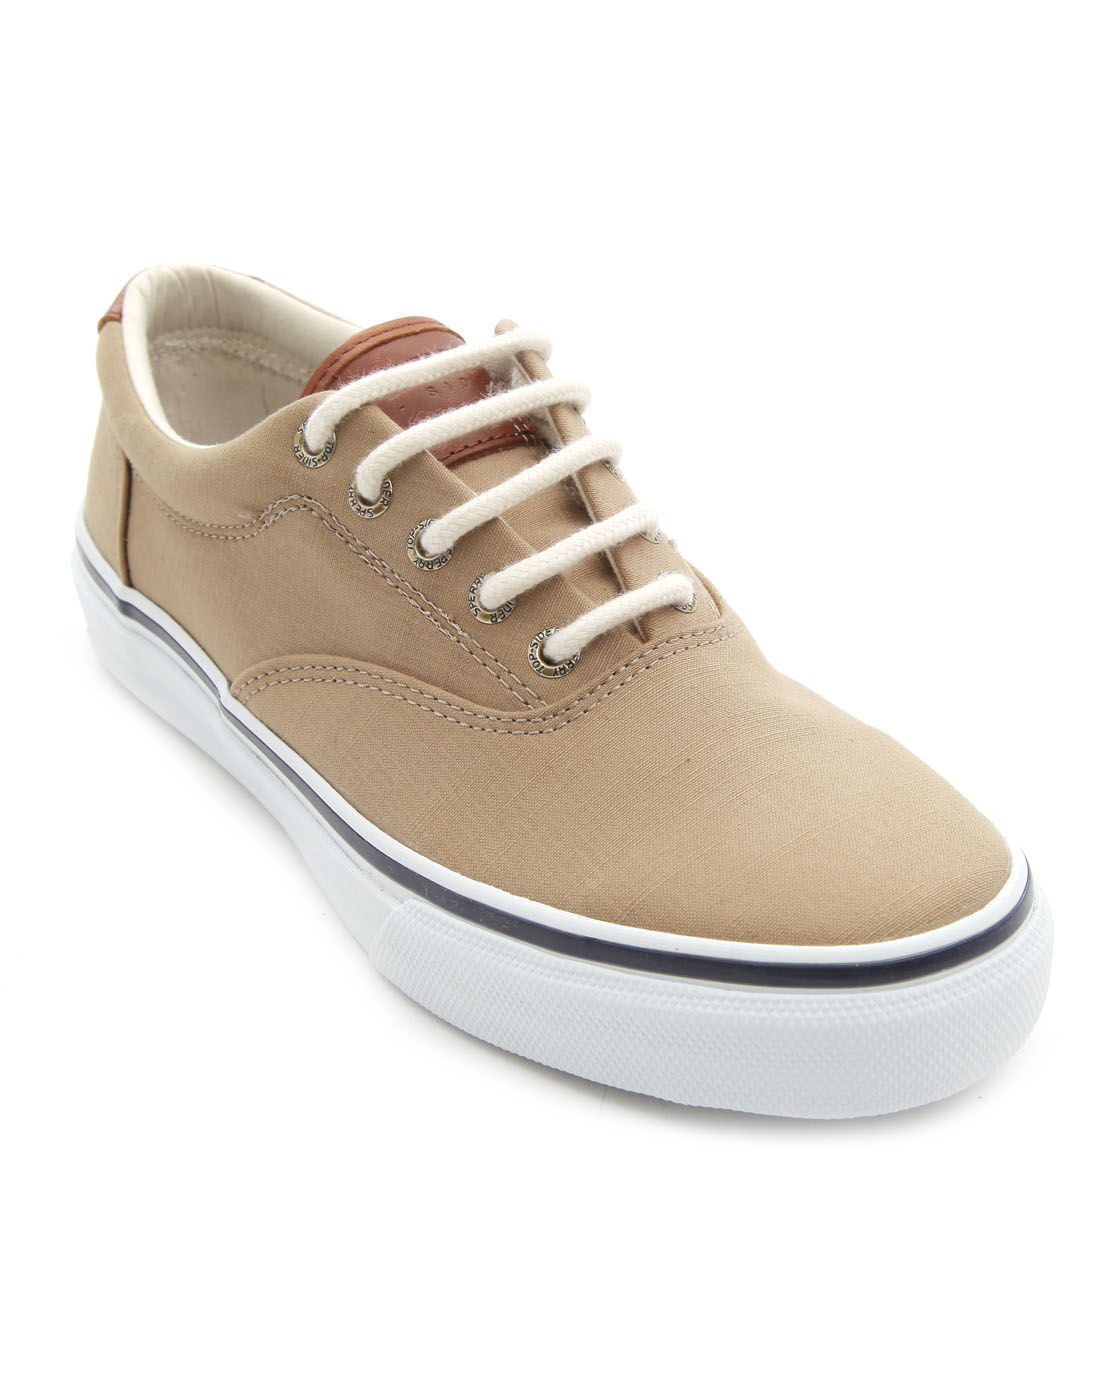 Velcro Athletic Shoes For Men Images Yoga Decorating